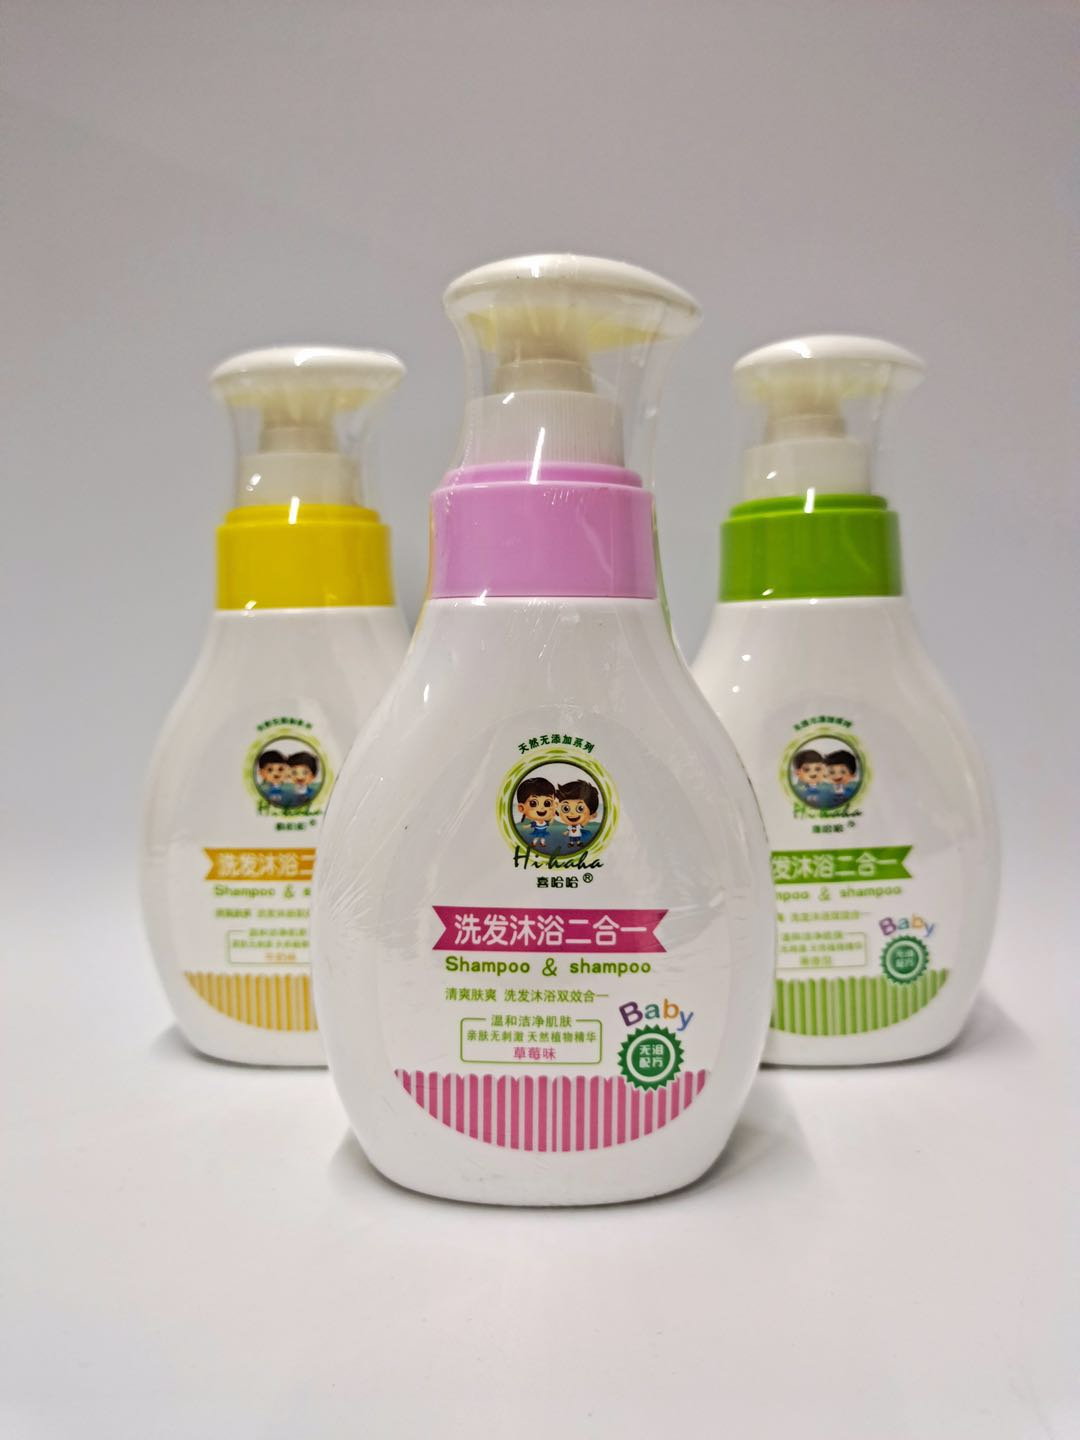 Xiha childrens tearless shampoo and bath two in one 300ml shampoo and Bath Gel